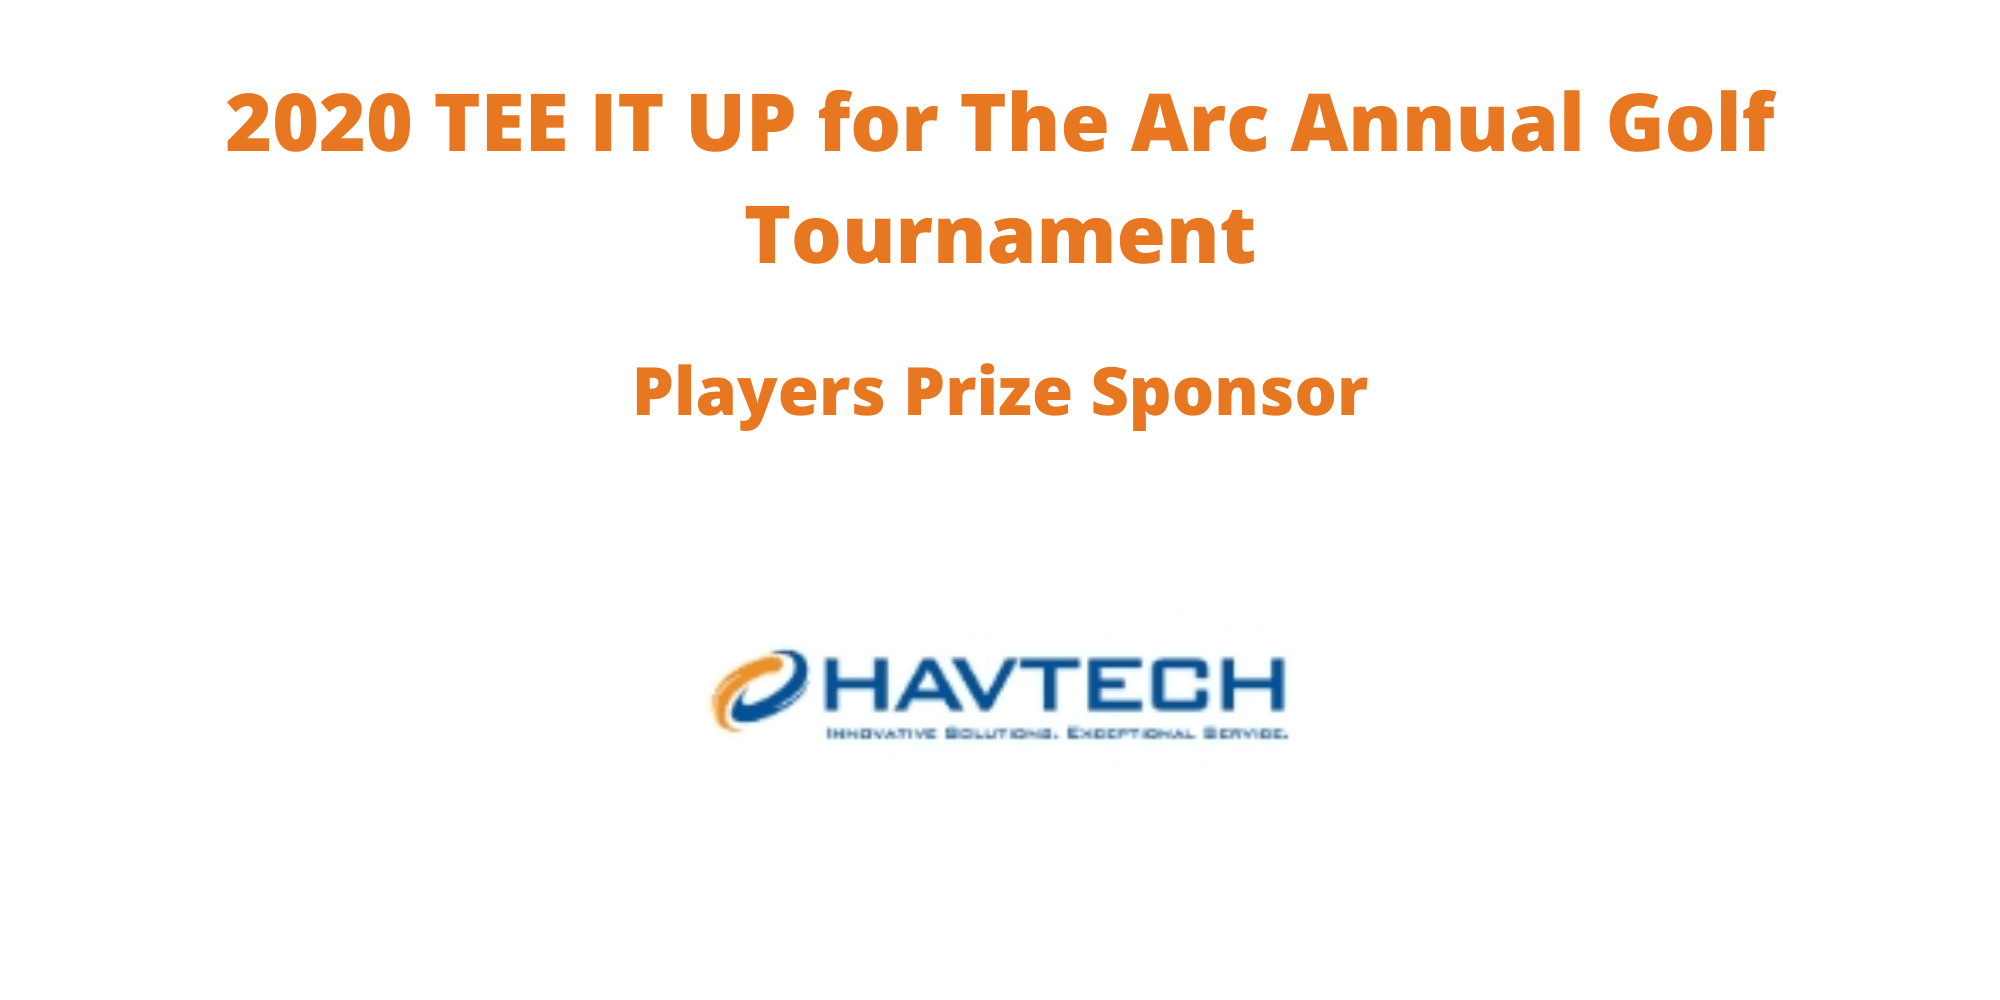 HAVTECH is the Players Prize Sponsor of TEE IT UP for The Arc Annual Golf Tournament